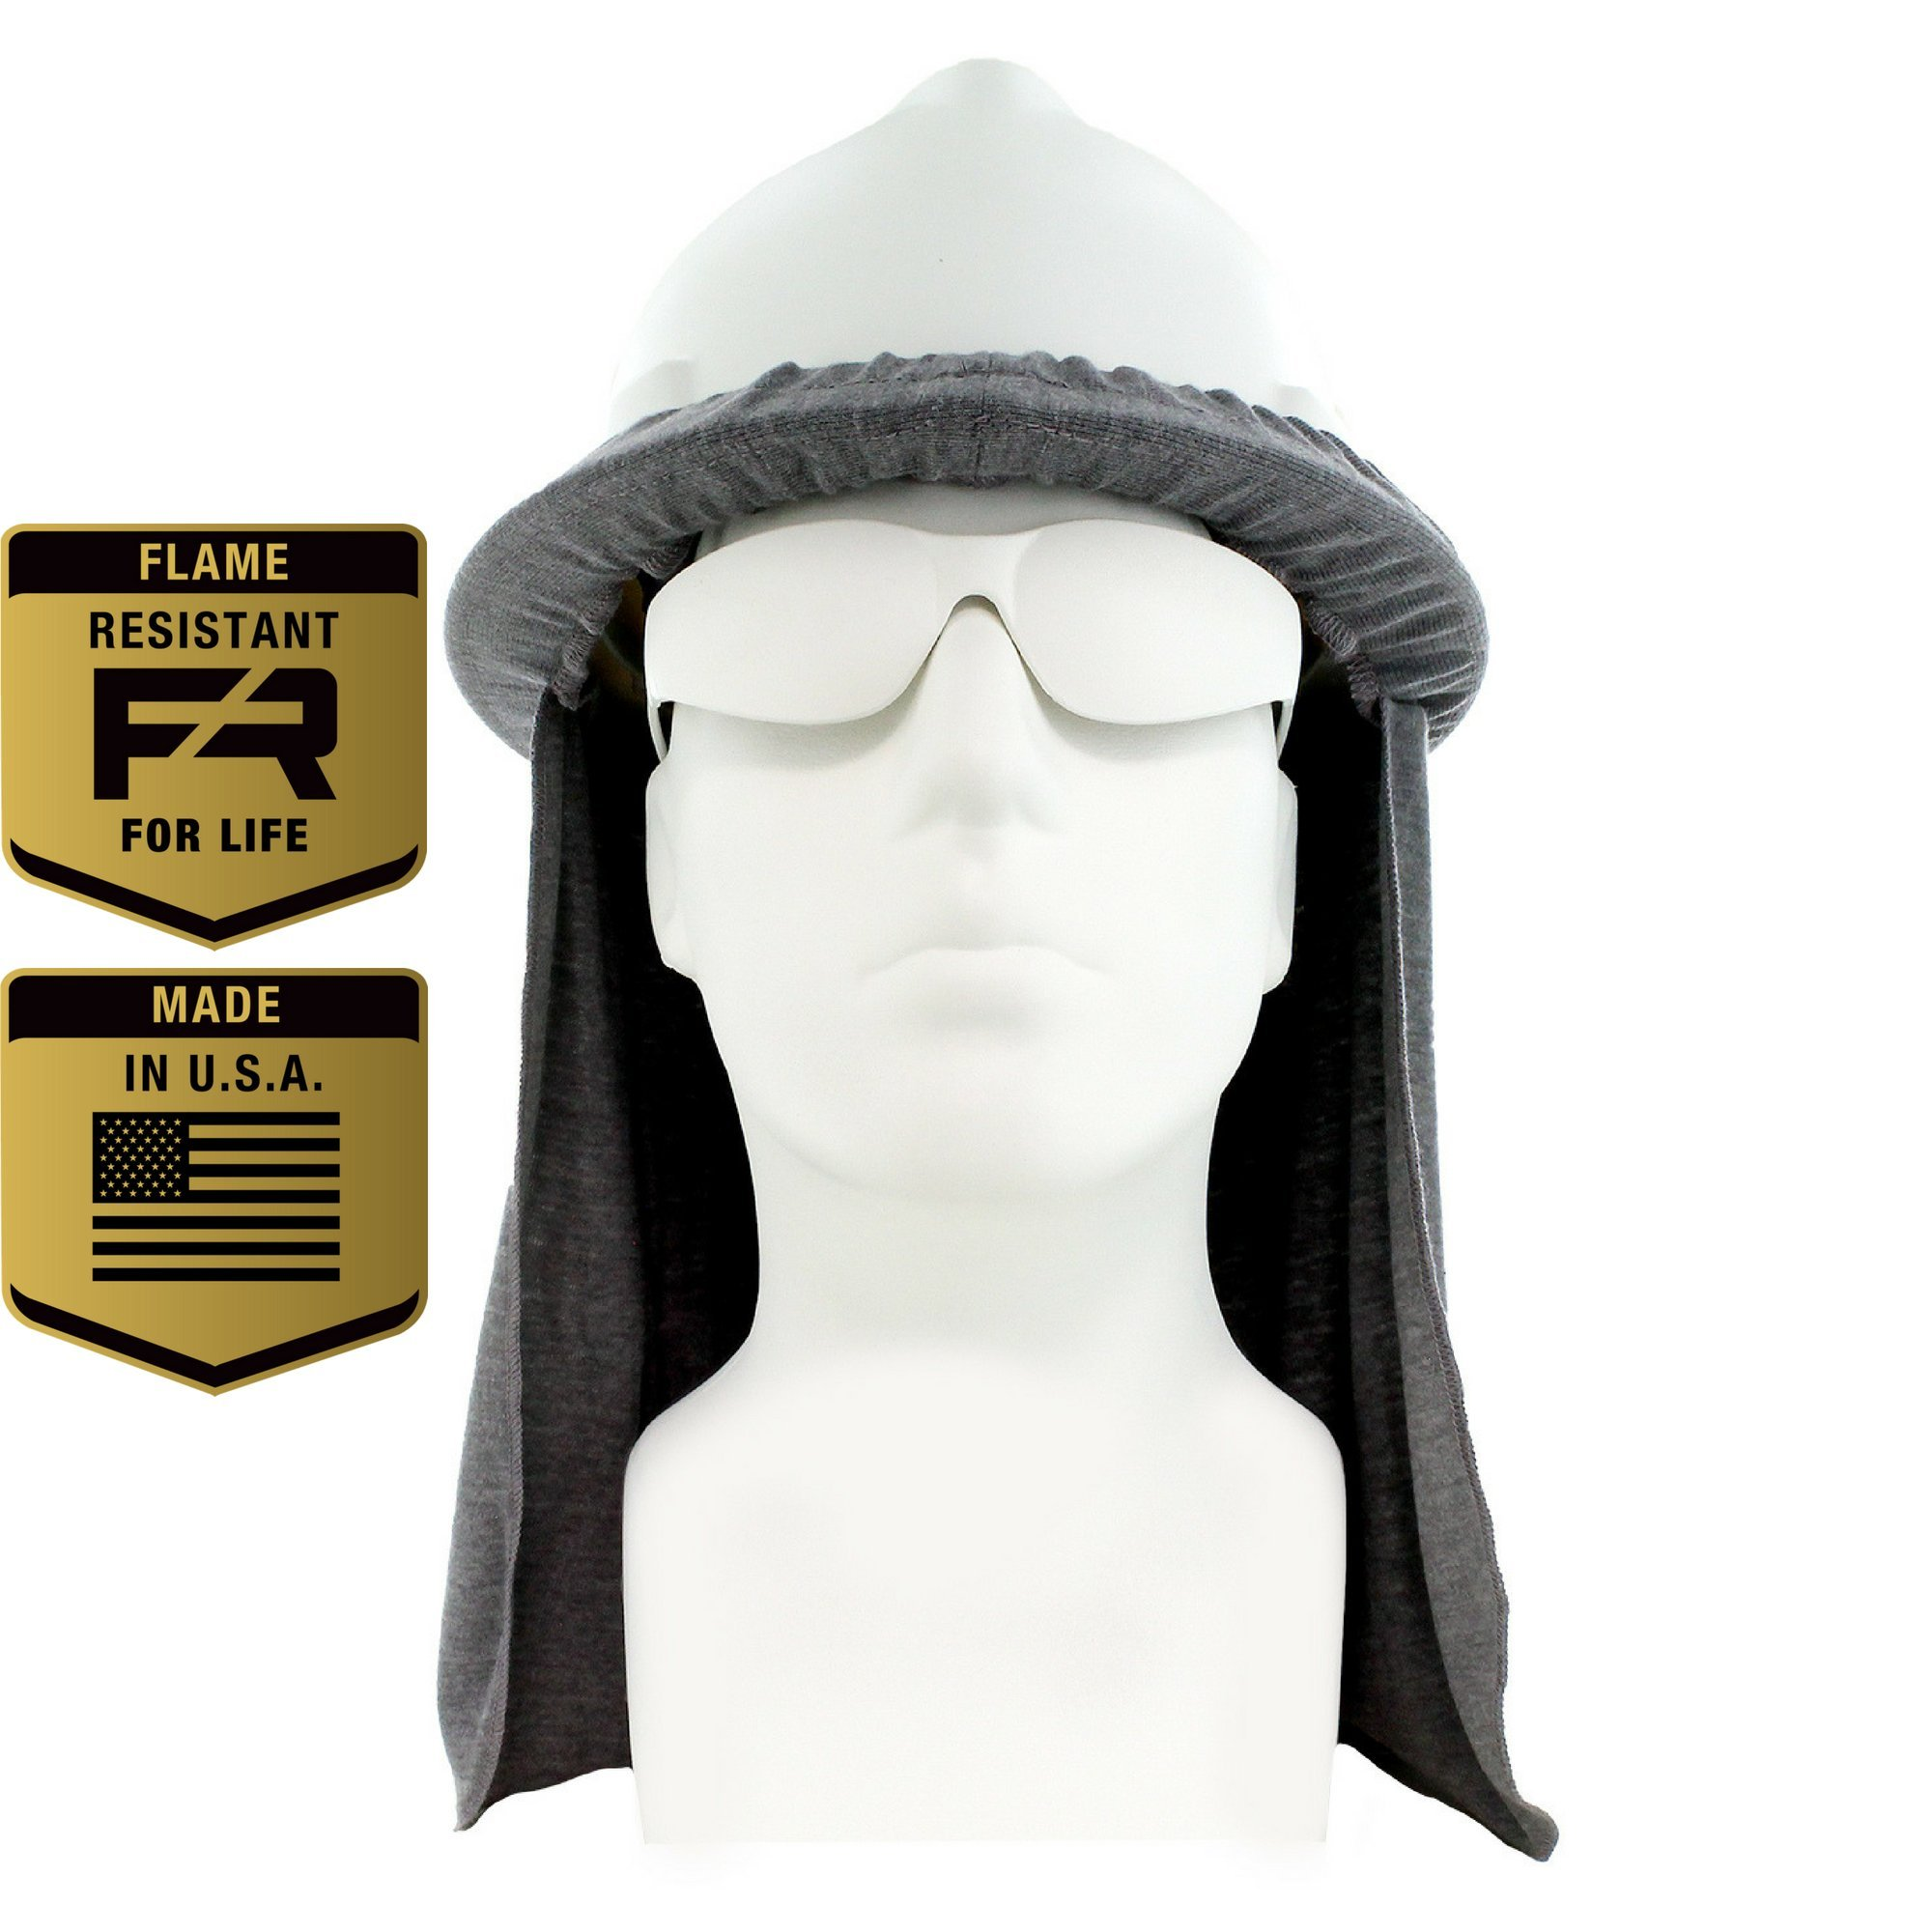 Flame Resistant FR Hard Hat Neck Shade, Sol Shade, Lt. Gray, One Size Fits All Hardhats (Light Gray) by Benchmark FR